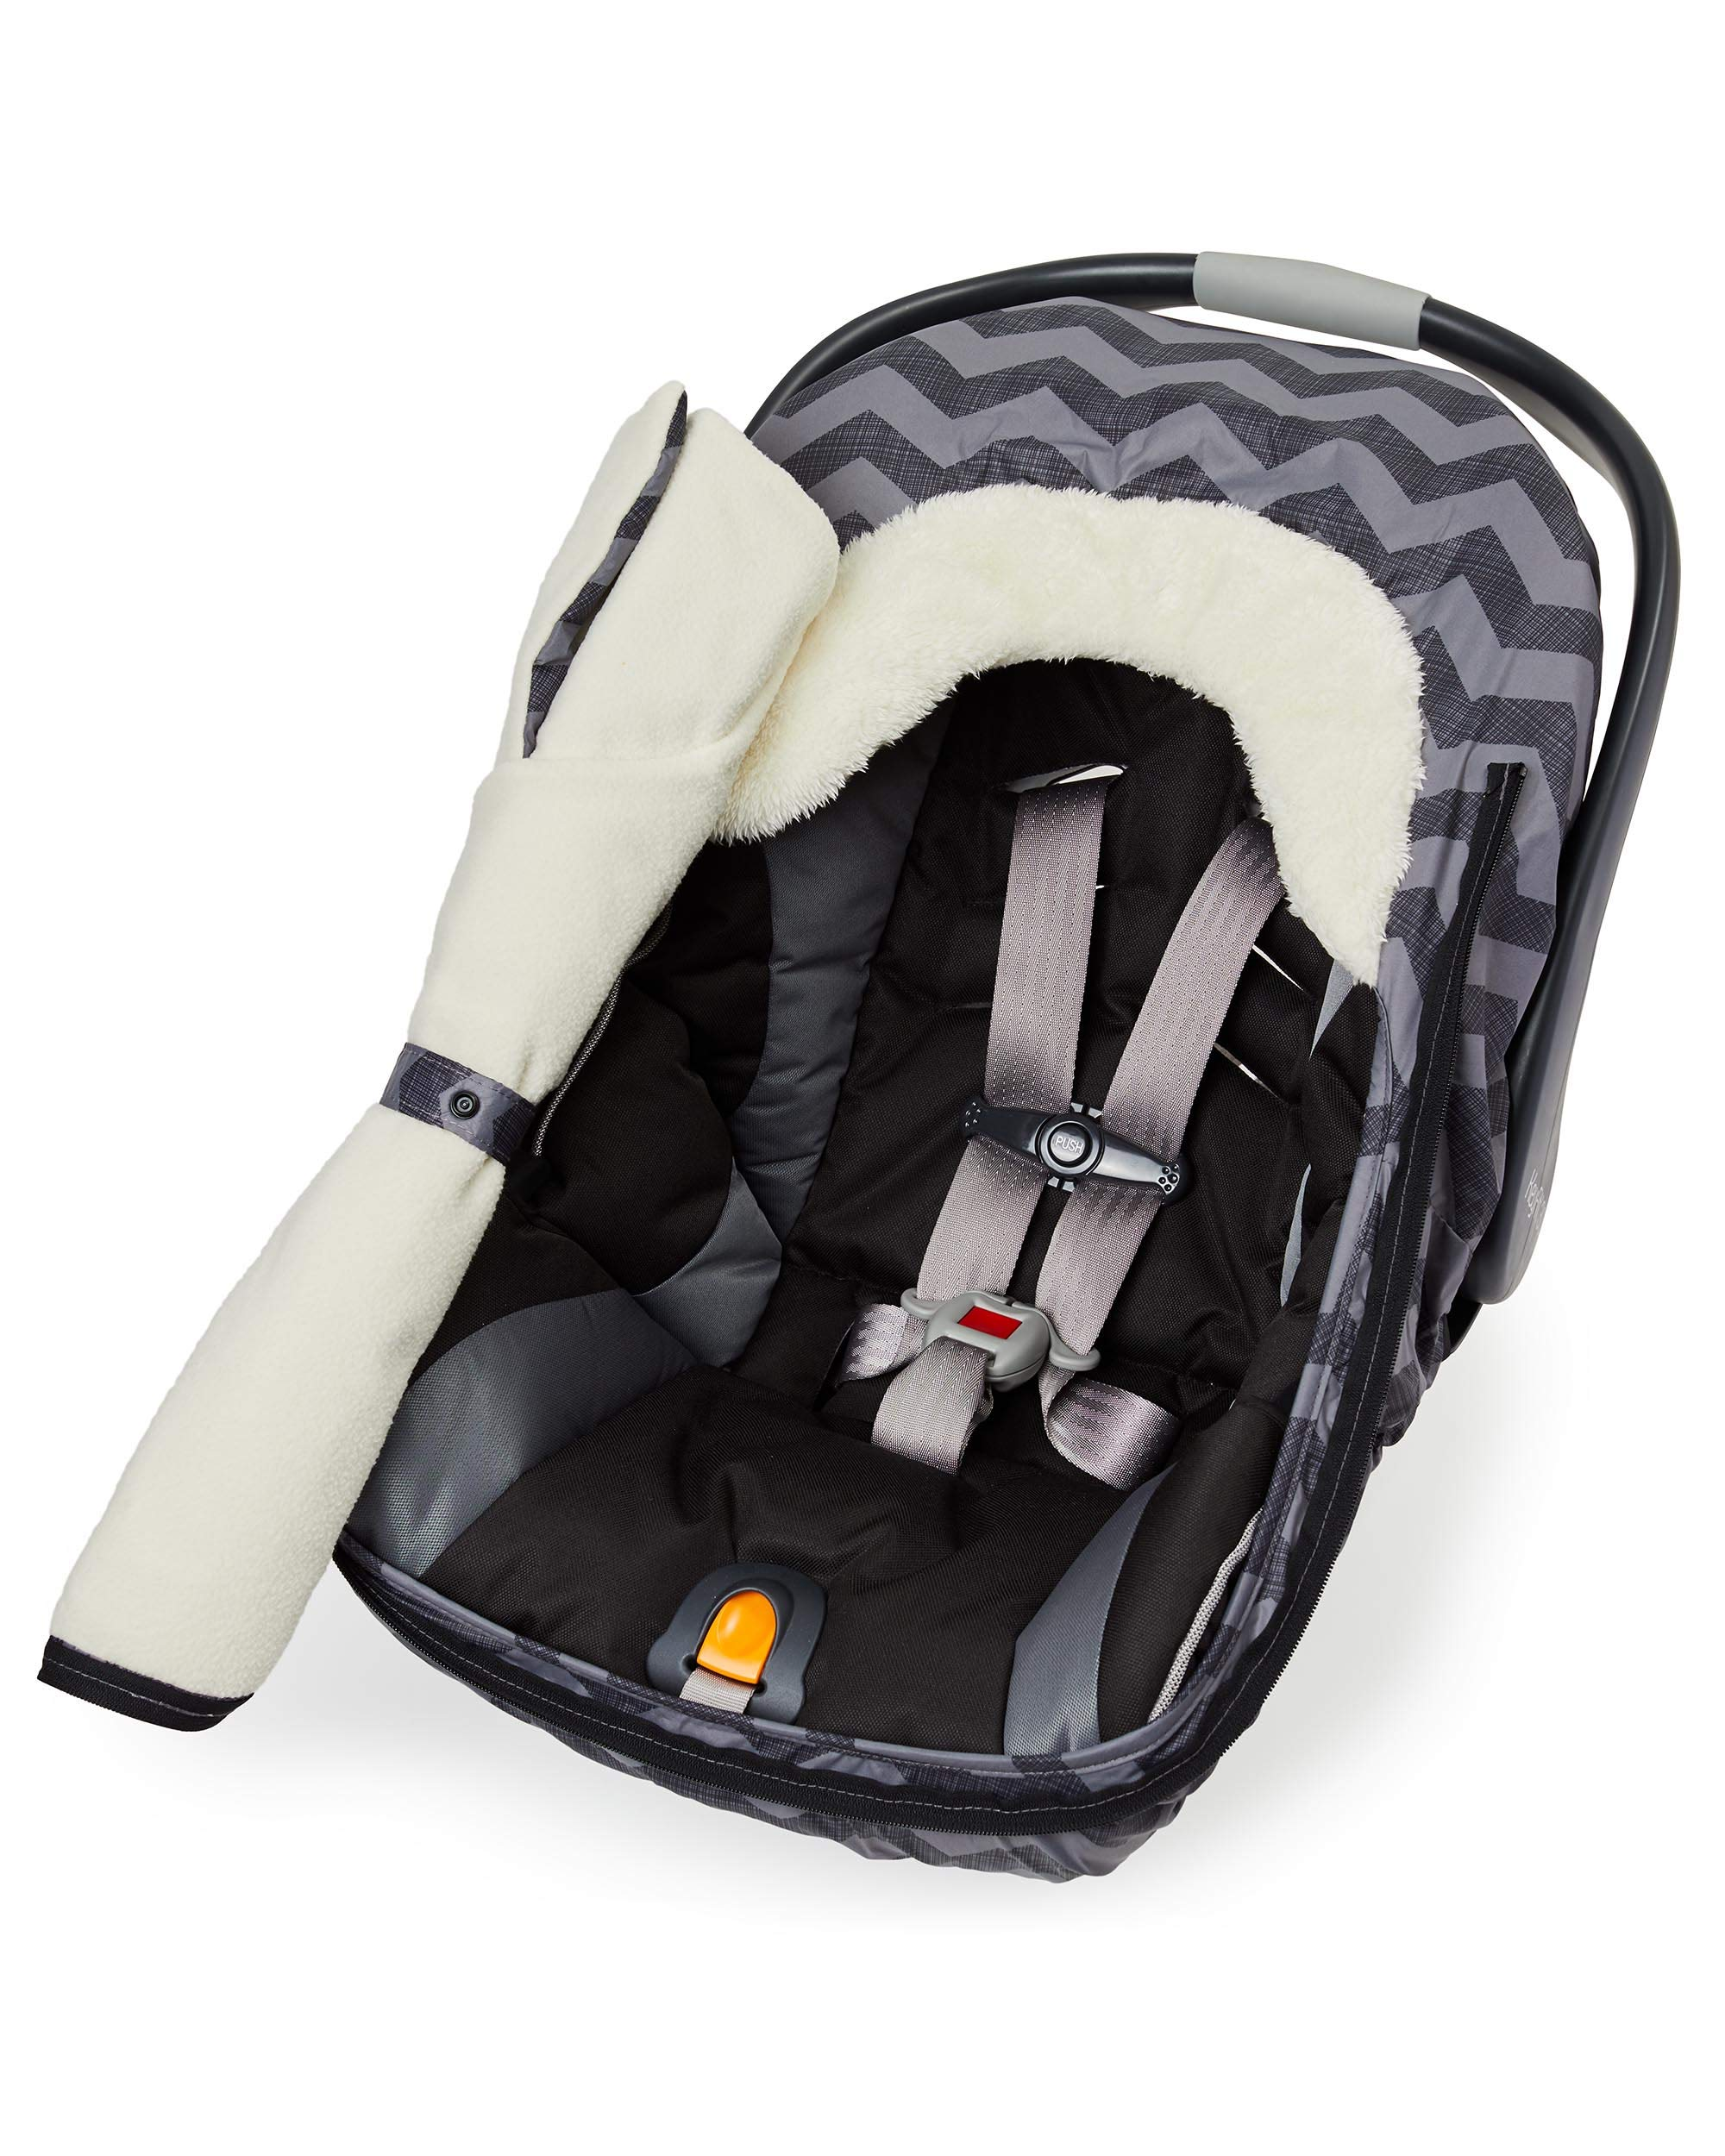 Skip Hop Stroll & Go Infant & Toddler Automotive Car Seat Cover Bunting Accessories, Universal Fit, Tonal Chevron, Black Chevron by Skip Hop (Image #3)